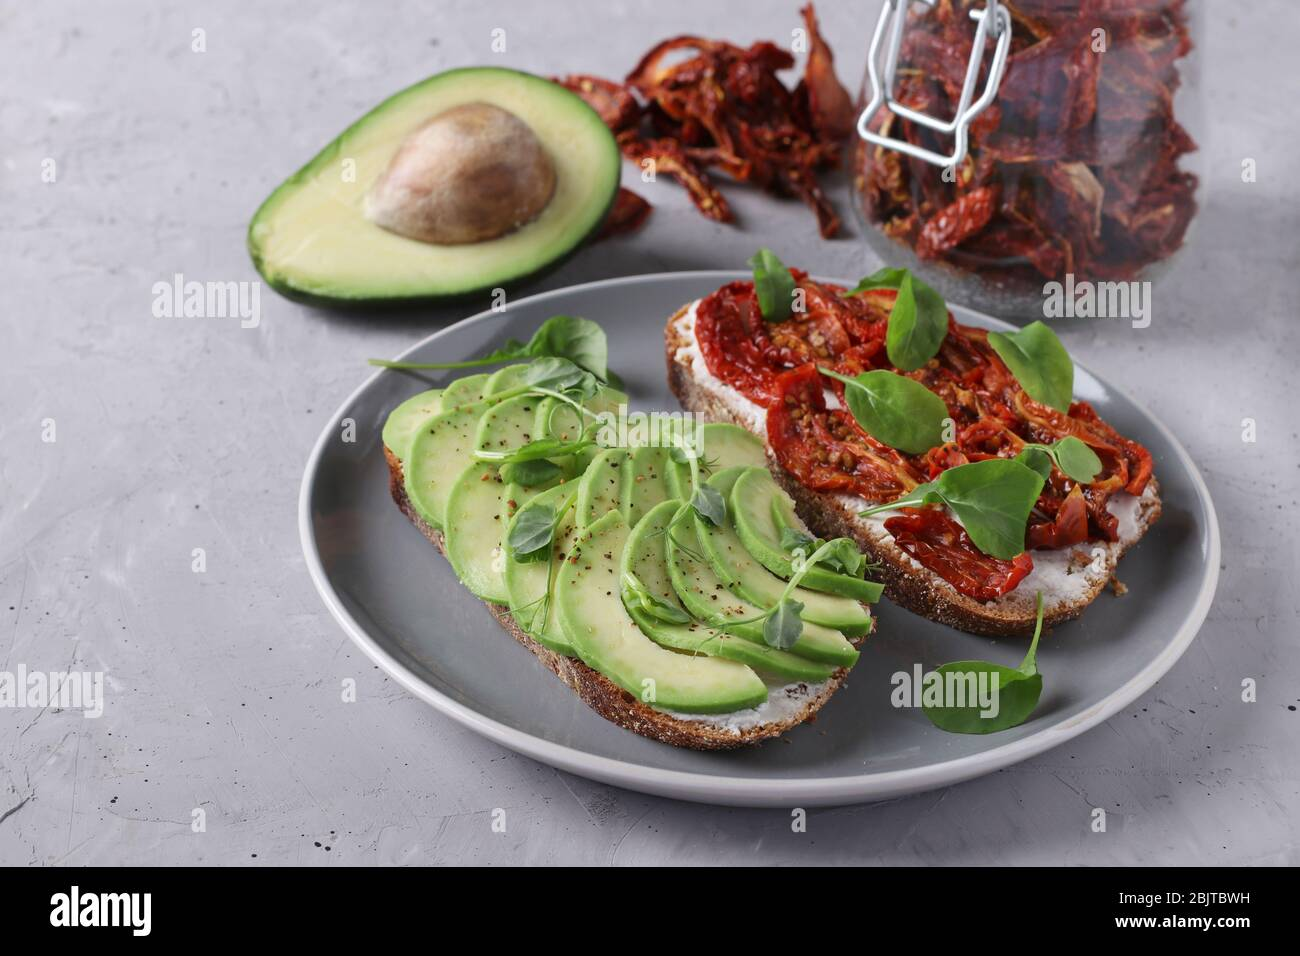 Two sandwiches with avocado, dried tomatoes, arugula and peas microgreen on gray plate on gray concrete background, Closeup, Space for text Stock Photo